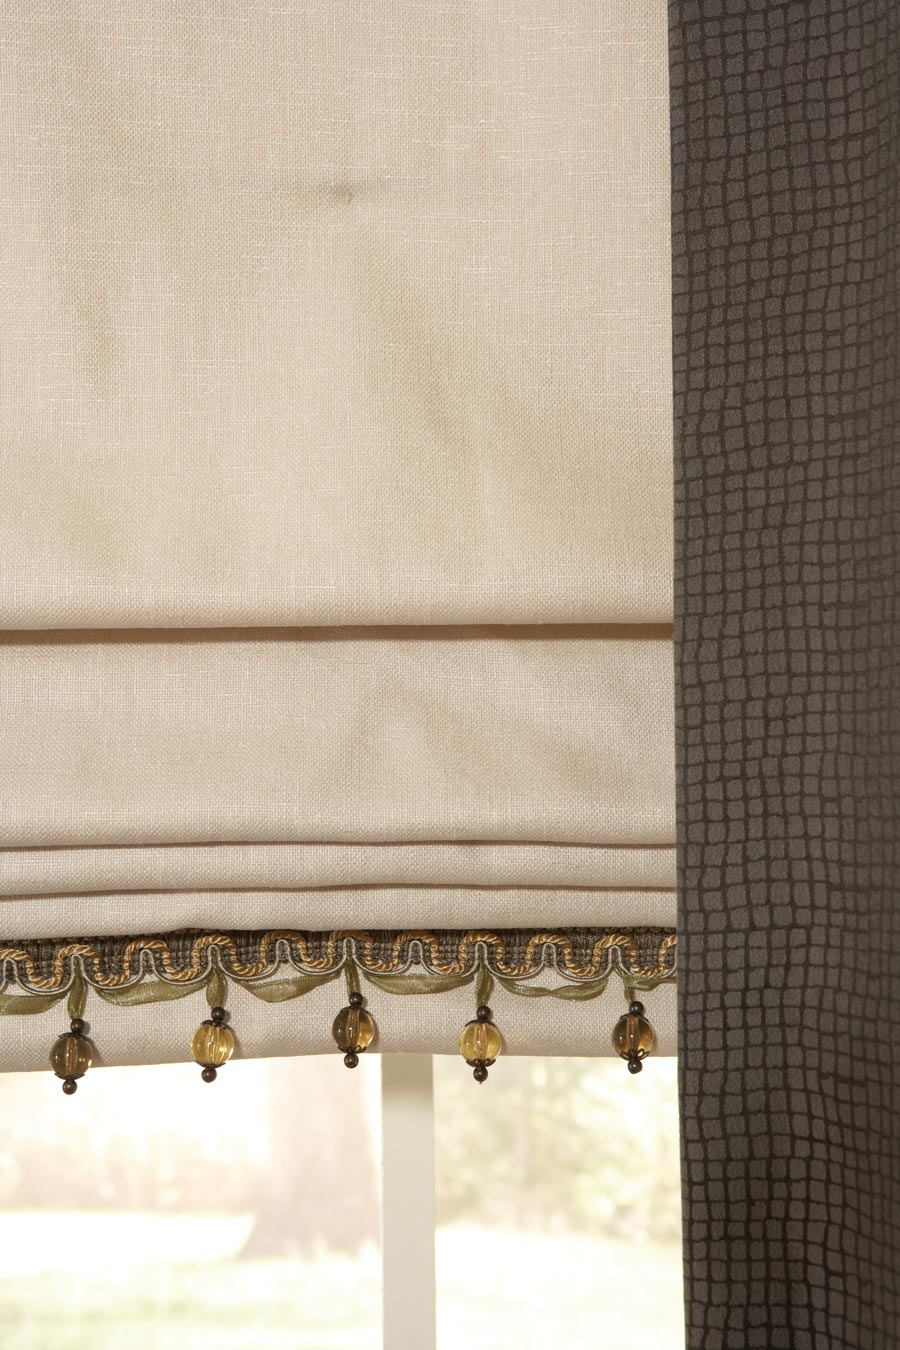 Close up view of Interior Masterpieces® Flat Roman shade with Embellishment Trim